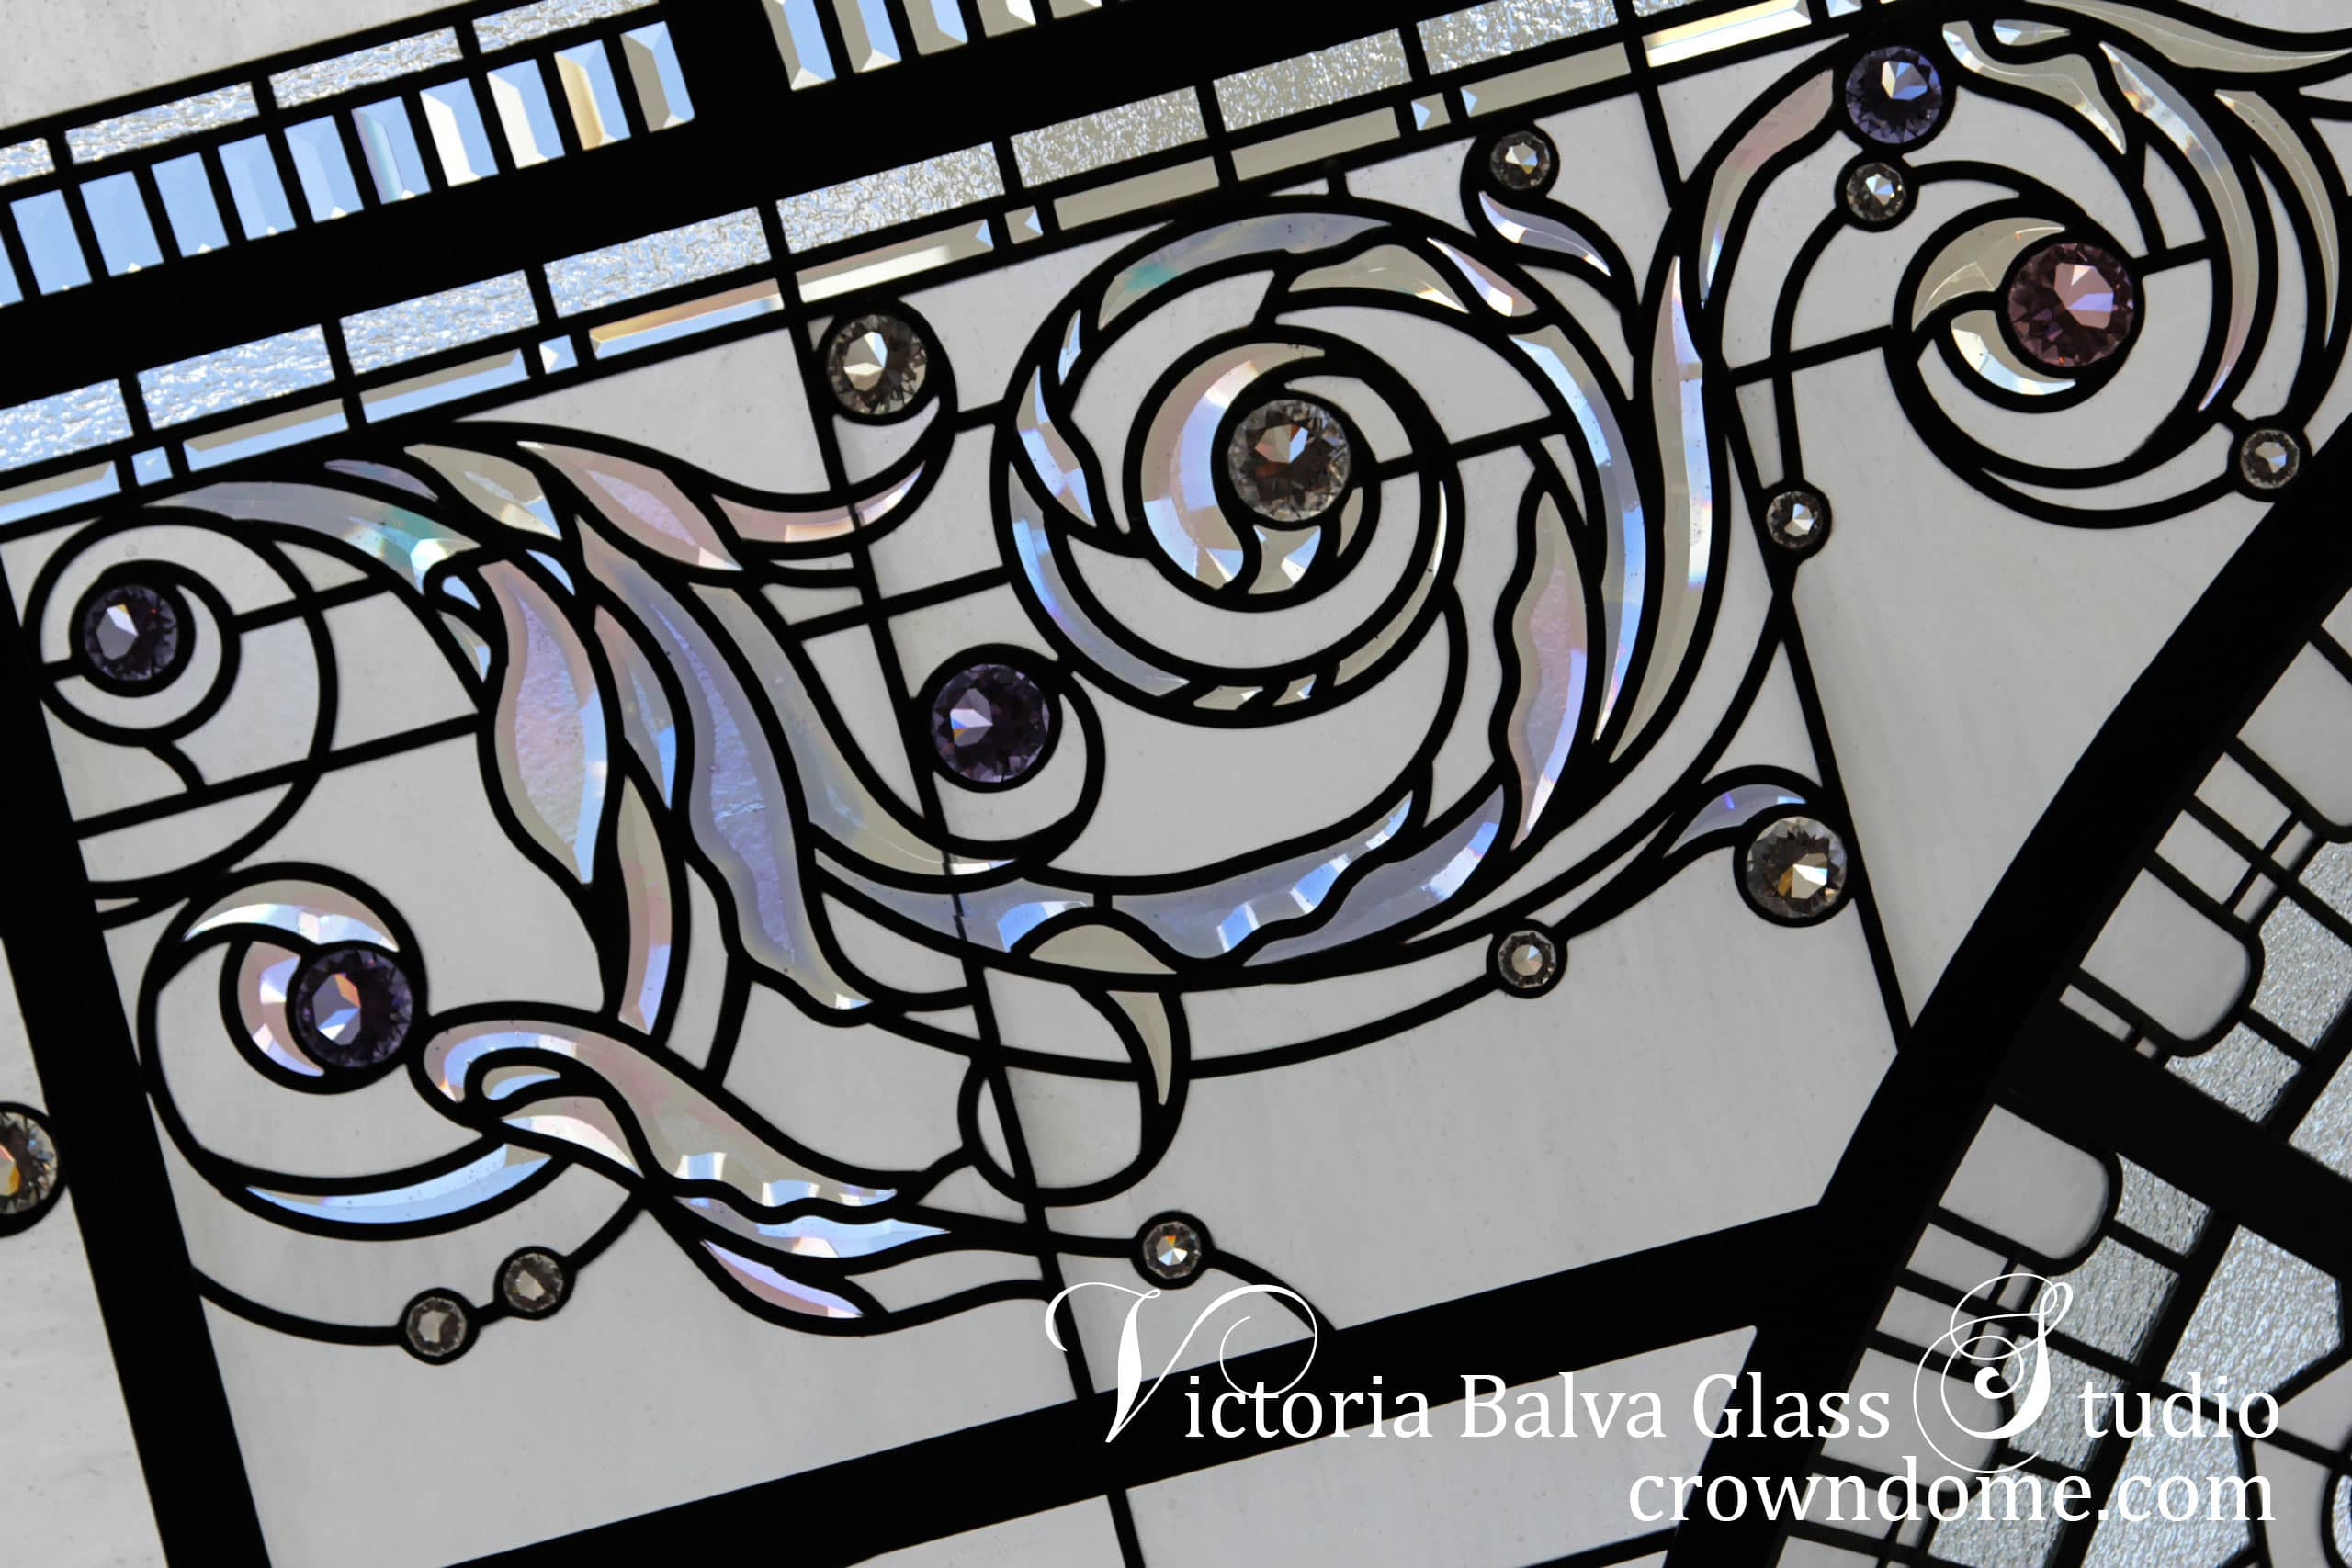 Custom designed beveled glass cluster acanthus detail for large stained leaded glass dome lay light ceiling. Clear textured architectural glass, custom stained leaded glass dome design, accent crystal jewels for custom built residential skylight. Glass design by glass artist Victoria Balva